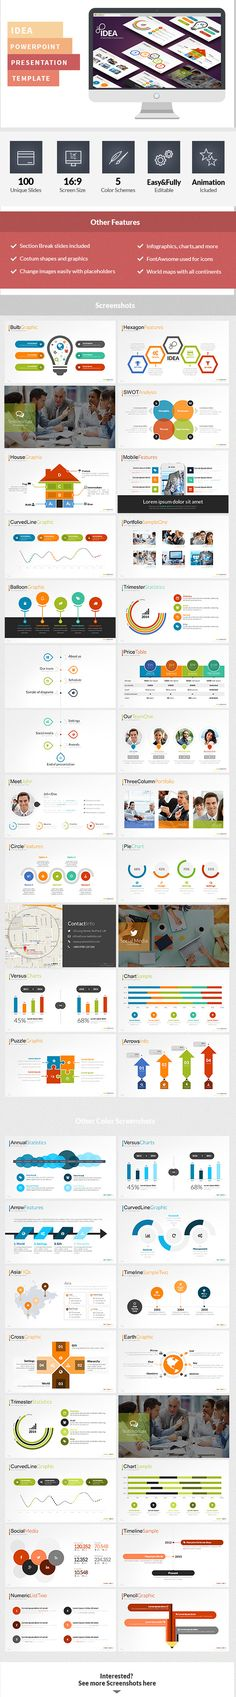 Business Plan Powerpoint Powerpoint presentation templates - powerpoint presentations template